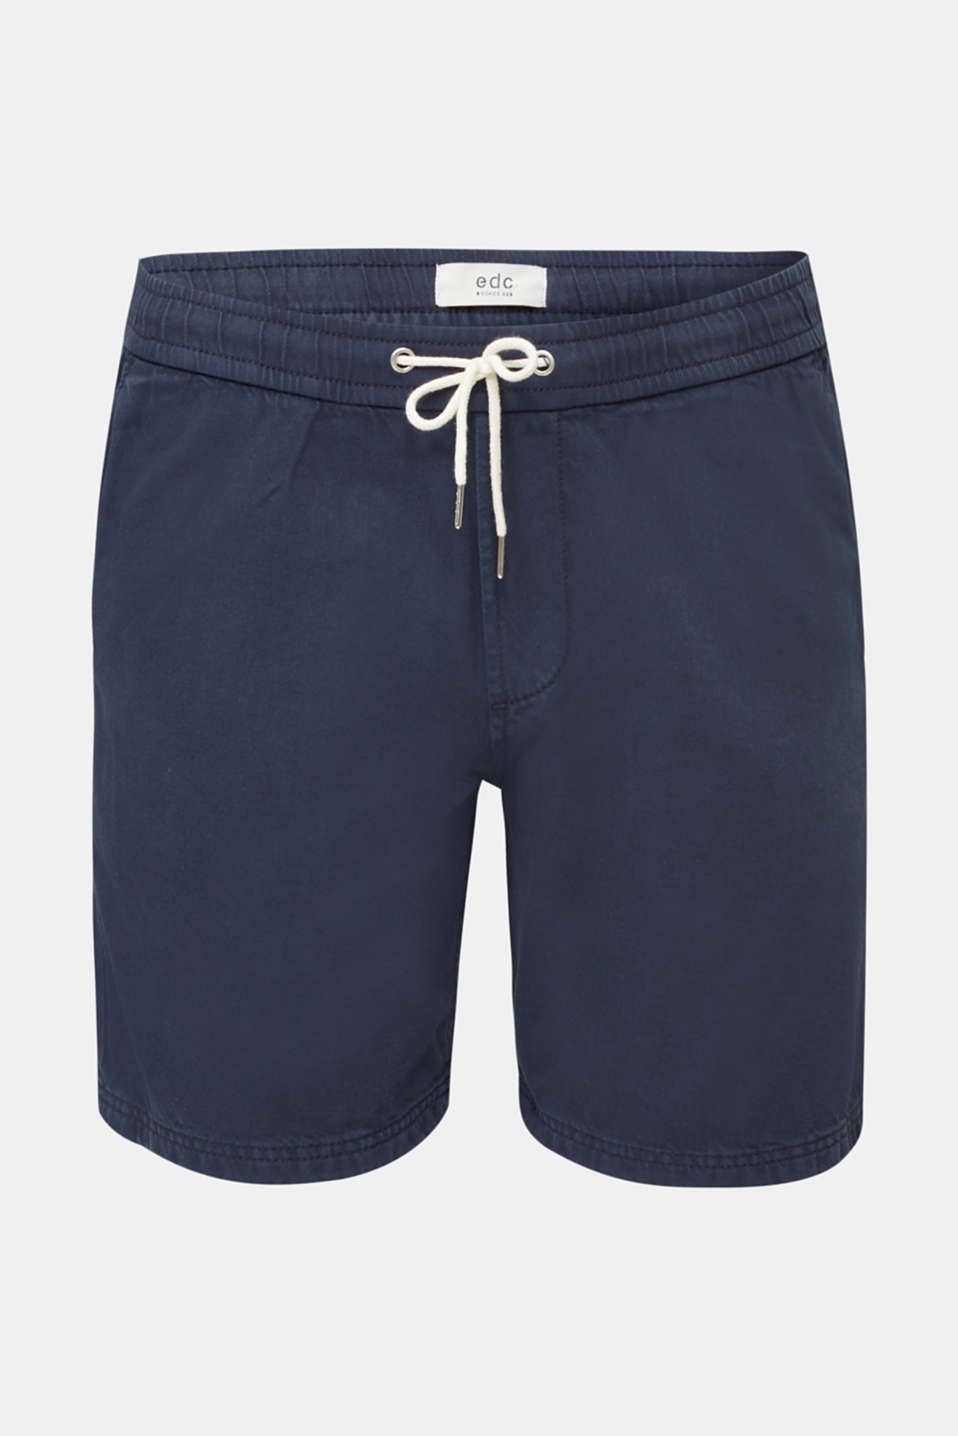 shorts in 100% cotton, DARK BLUE, detail image number 6